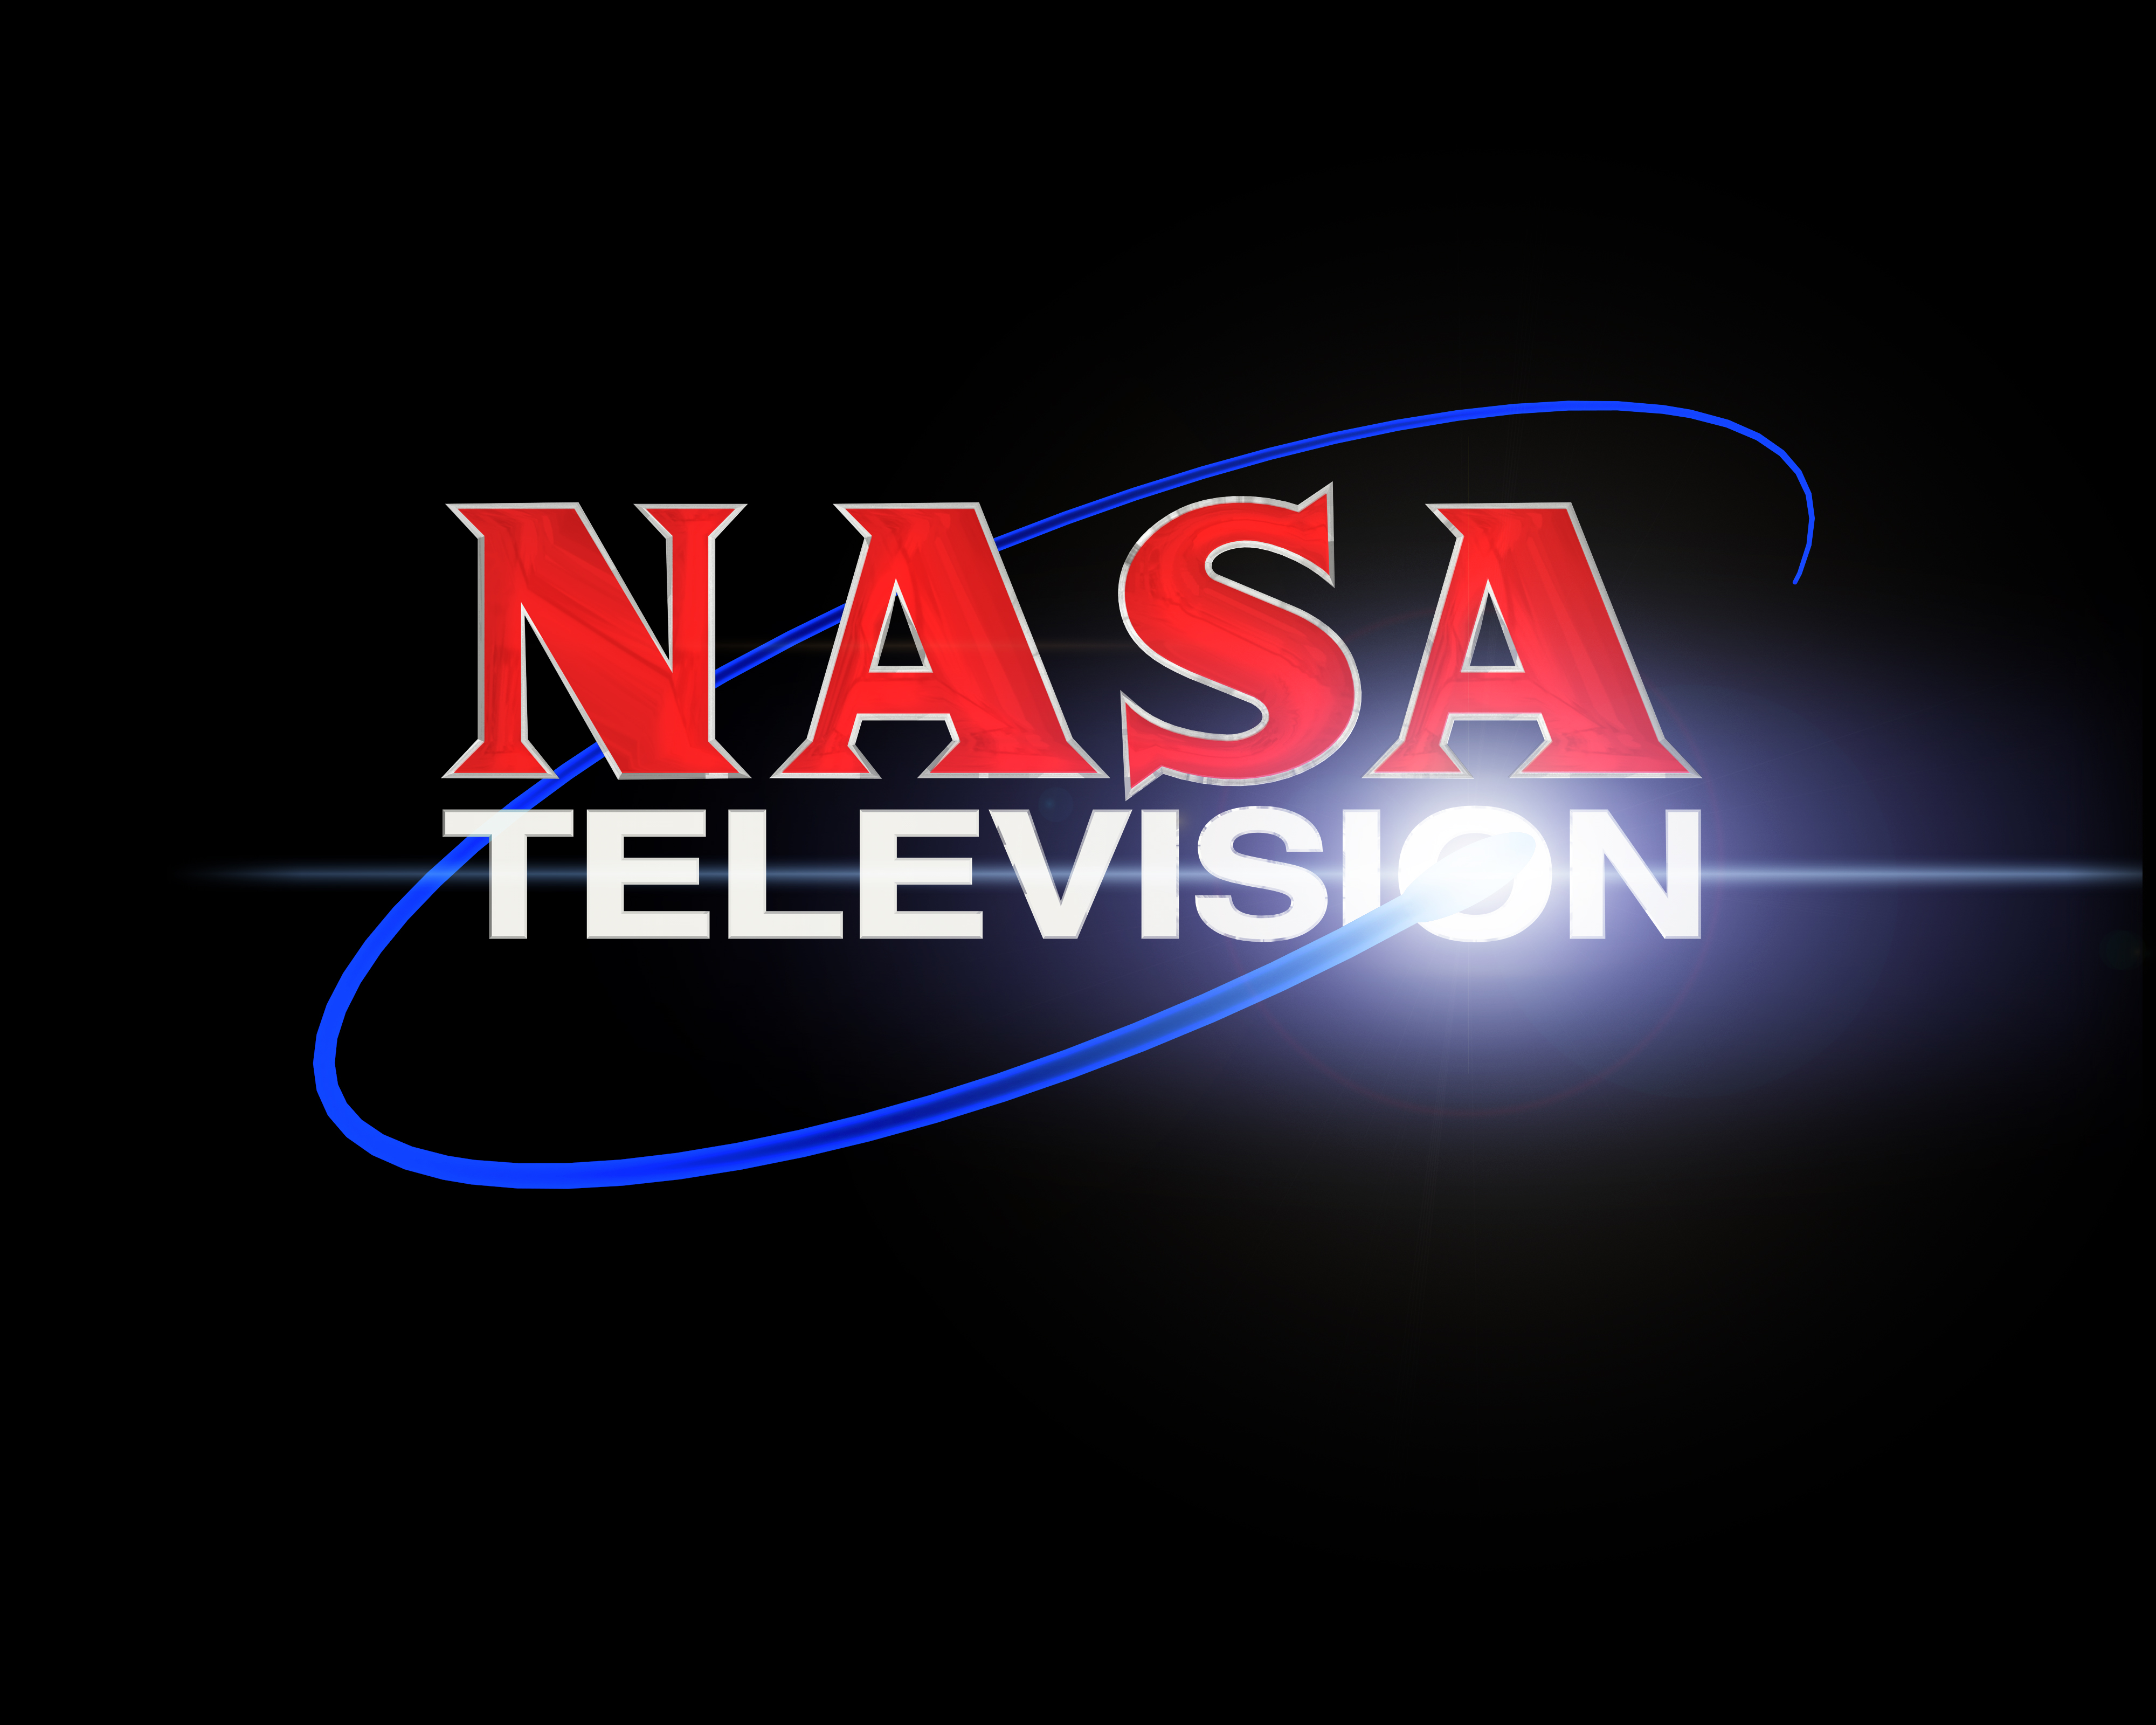 nasa channel on direct tv - HD4000×3200